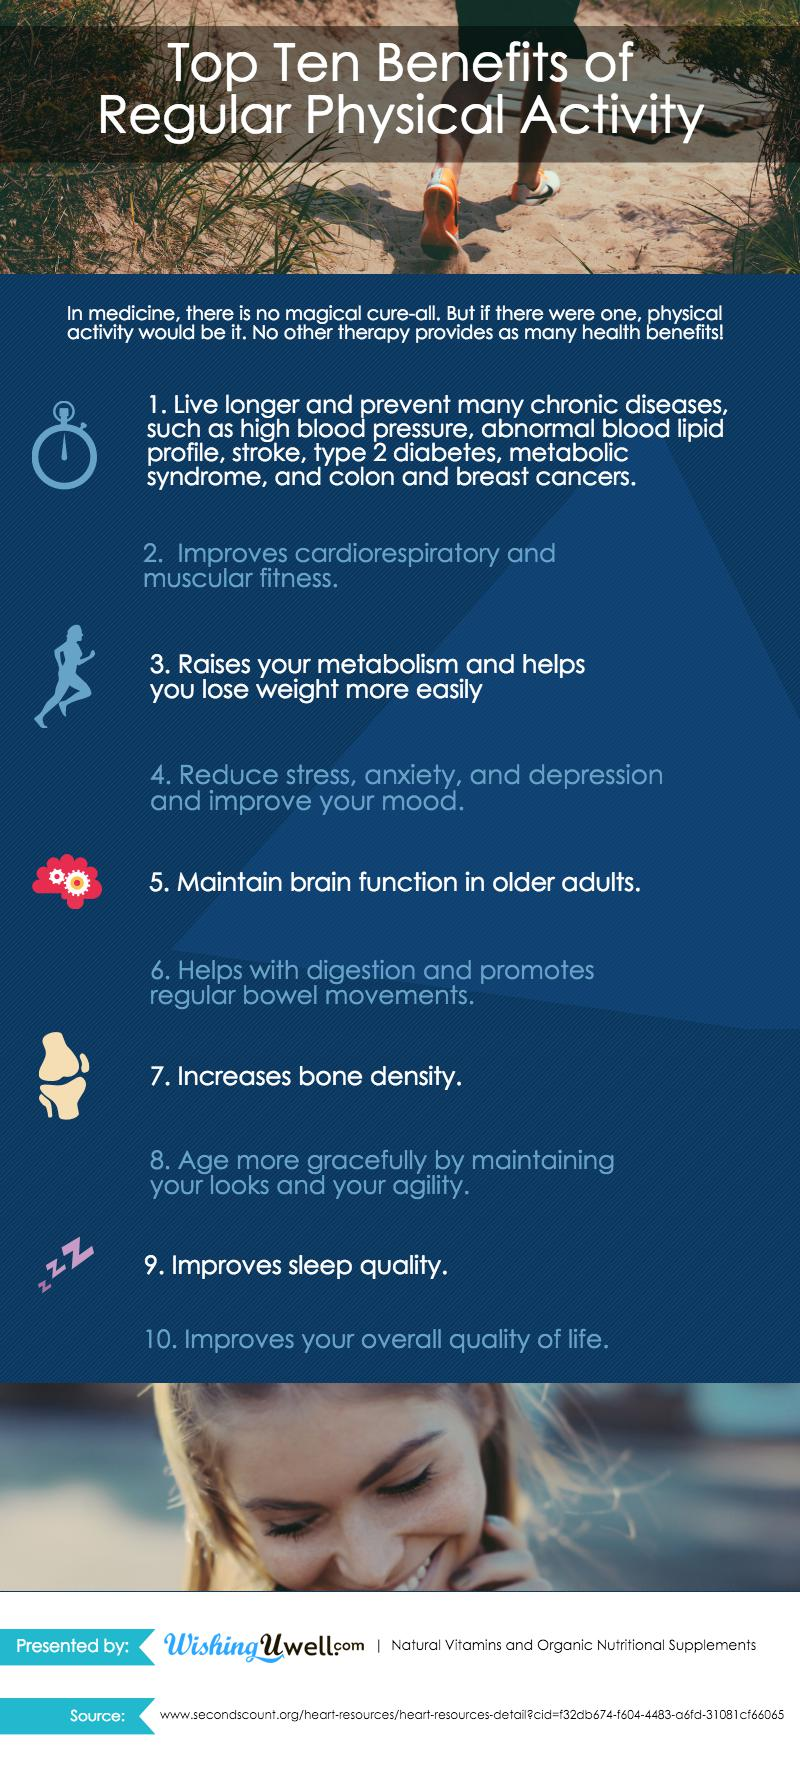 Top 10 Benefits of Regular Physical Activity